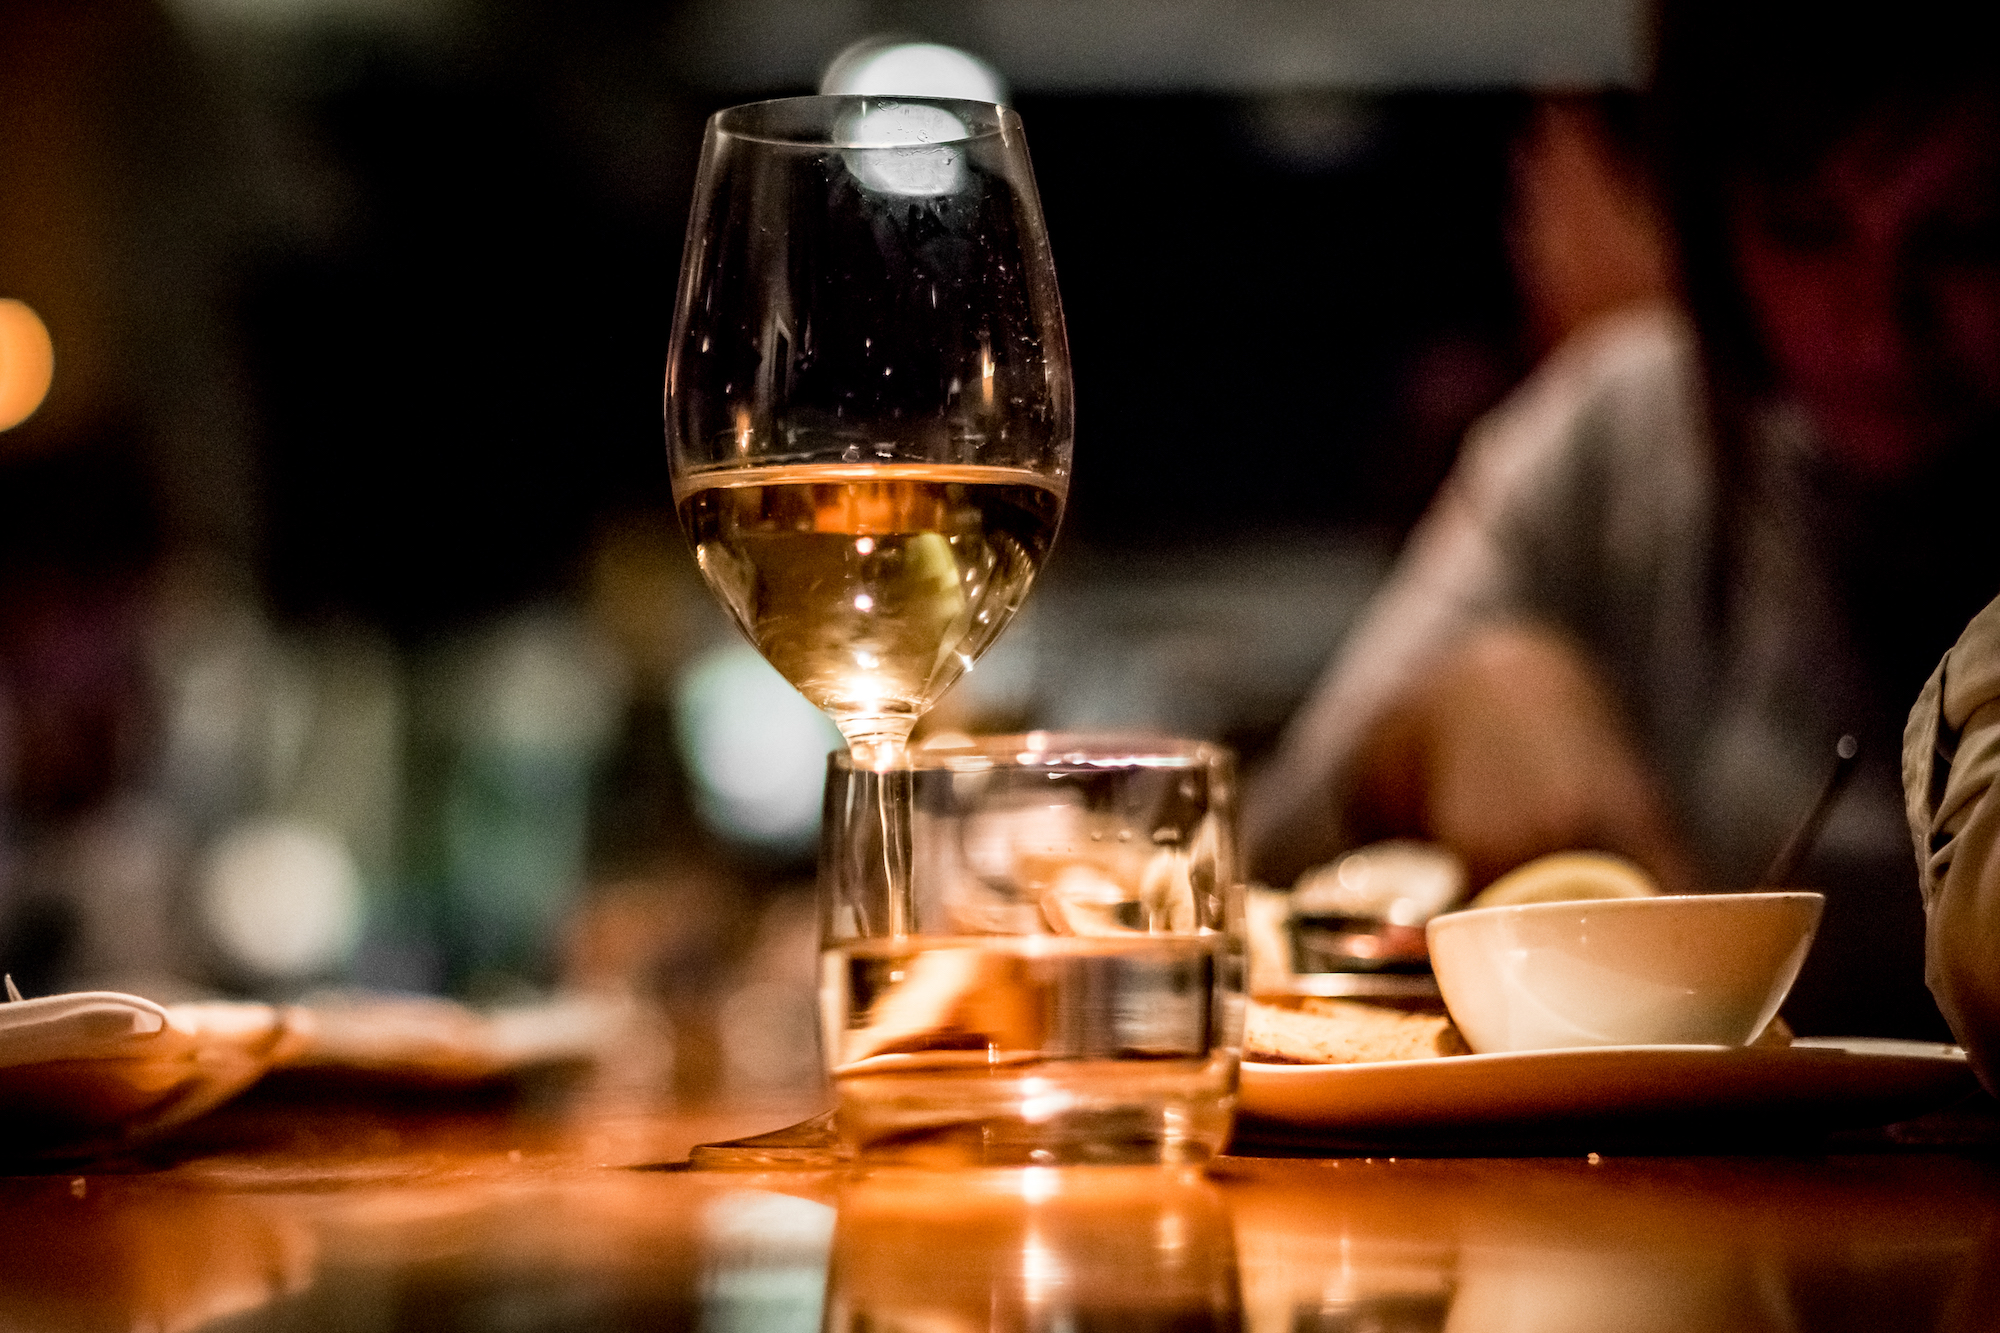 Wine Wednesdays - $15 off all bottles of wineReservations: yesPrivate dining room: yes (up to 16 people, please book in advance)Full Bar: yesPrivate Parties/Catering: yes, please inquire at info@soostoronto.com